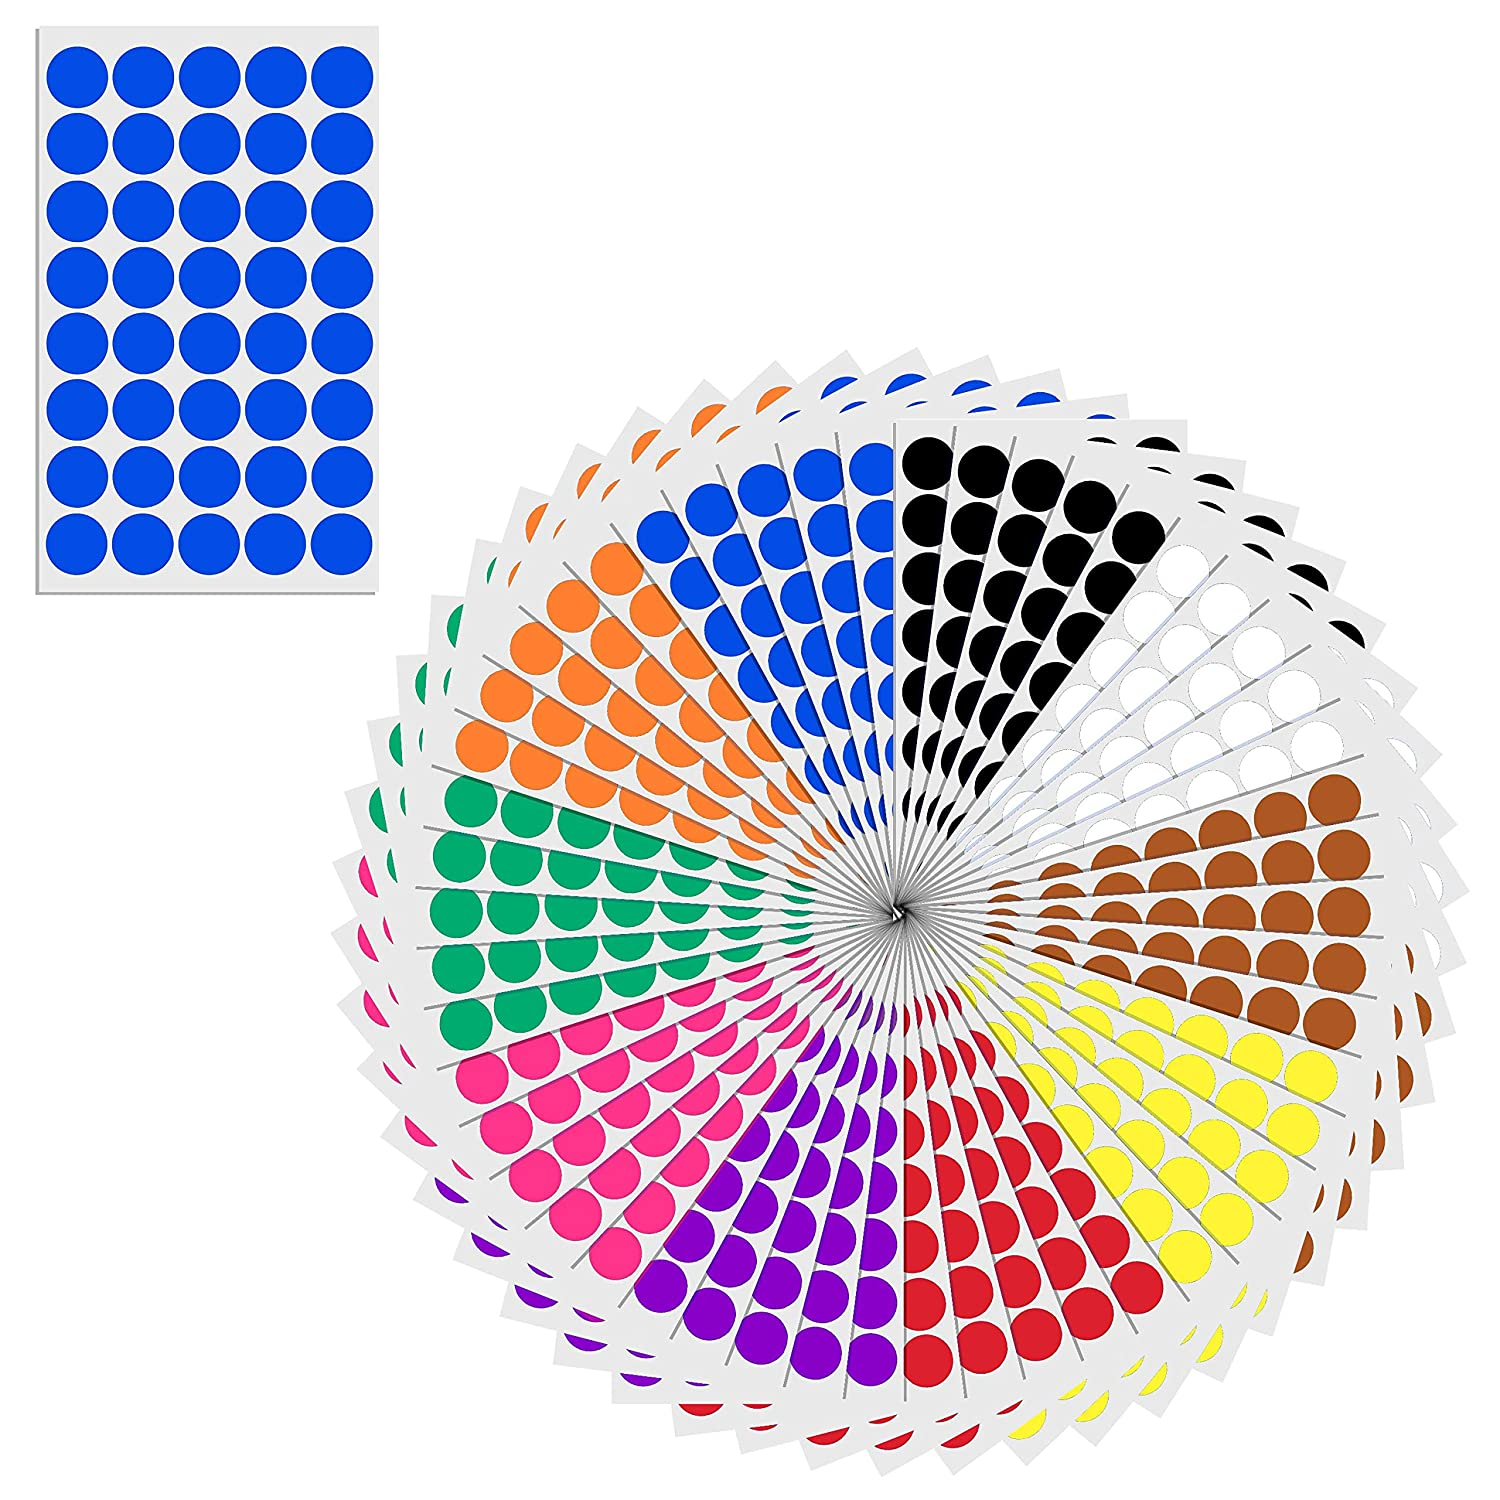 (3/4, 0.75 inch) Round Color Coding Circle Dot Sticker Labels - 10 Assorted Colors, Pack of 2000 TownStix